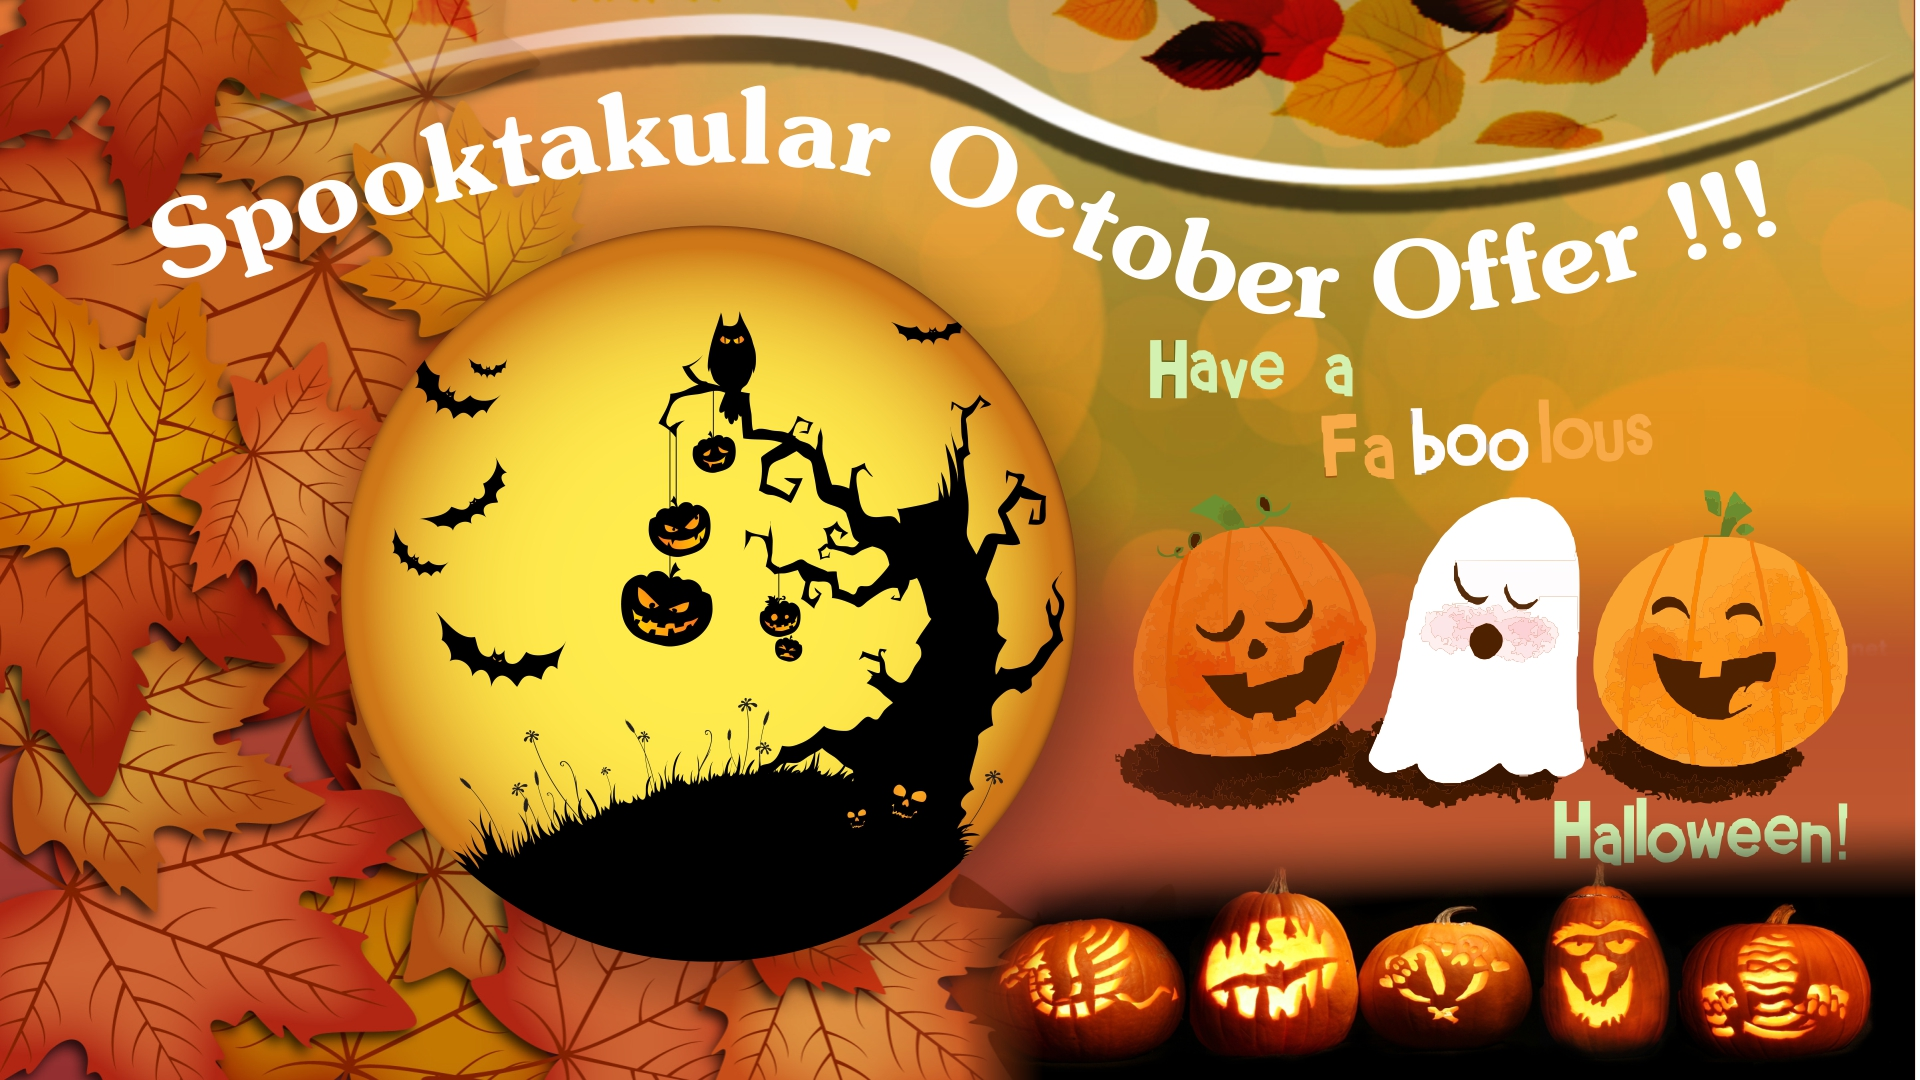 Spooktakular October offer from the Mercure Southampton Centre Dolphin Hotel